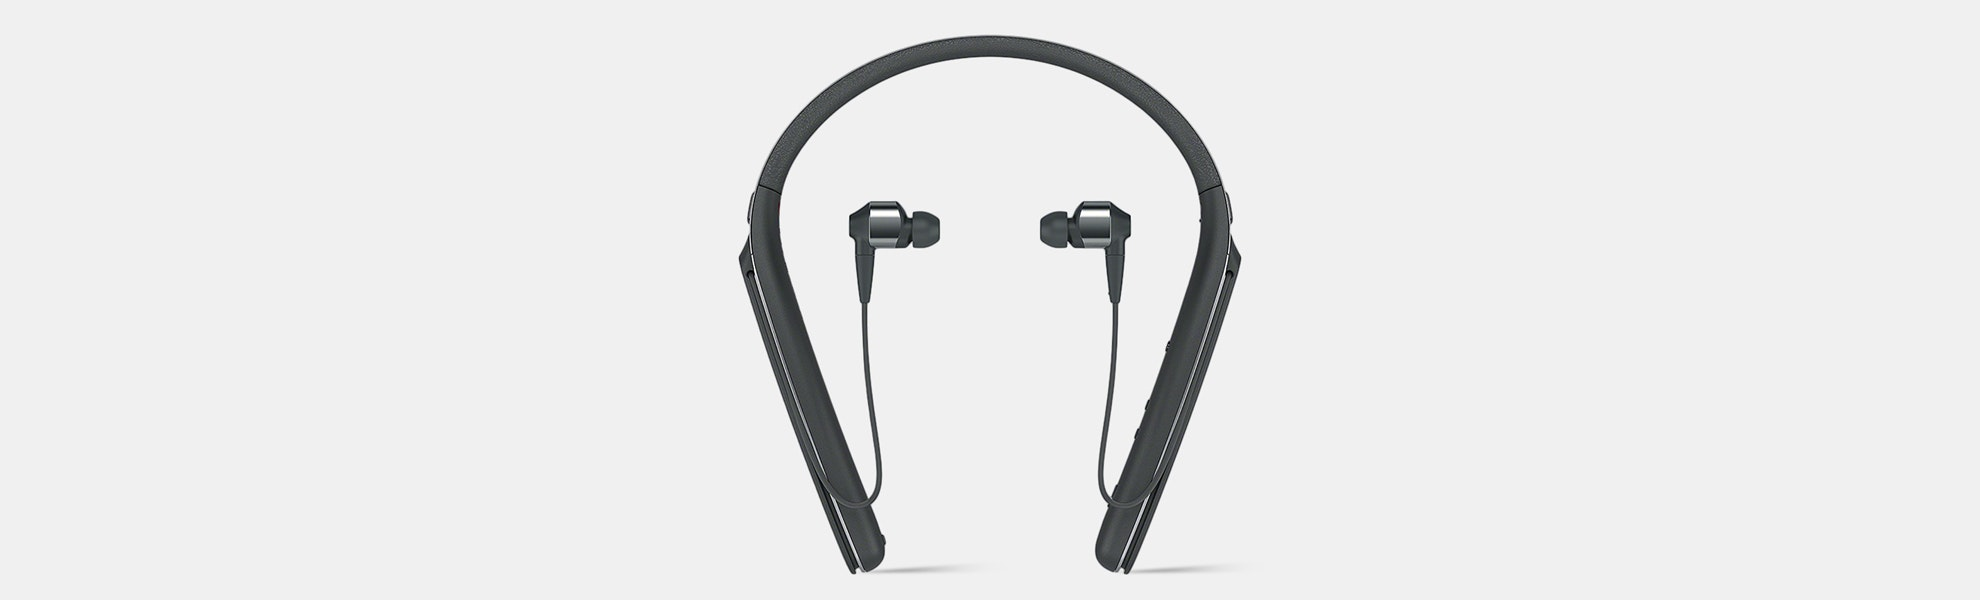 Sony WI1000X Noise-Canceling Earphones